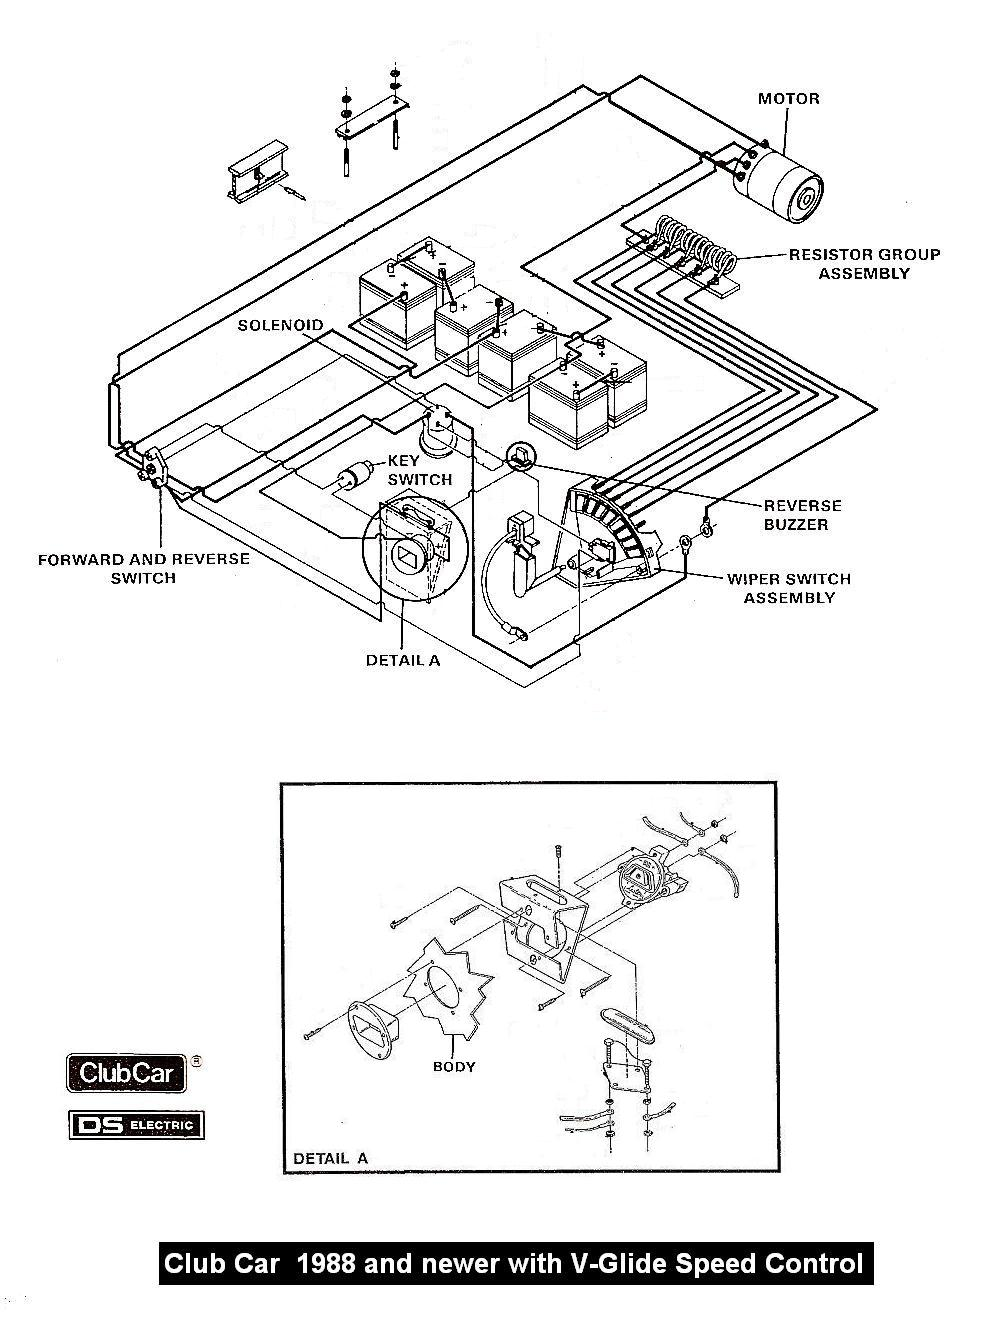 1988 club car parts diagram